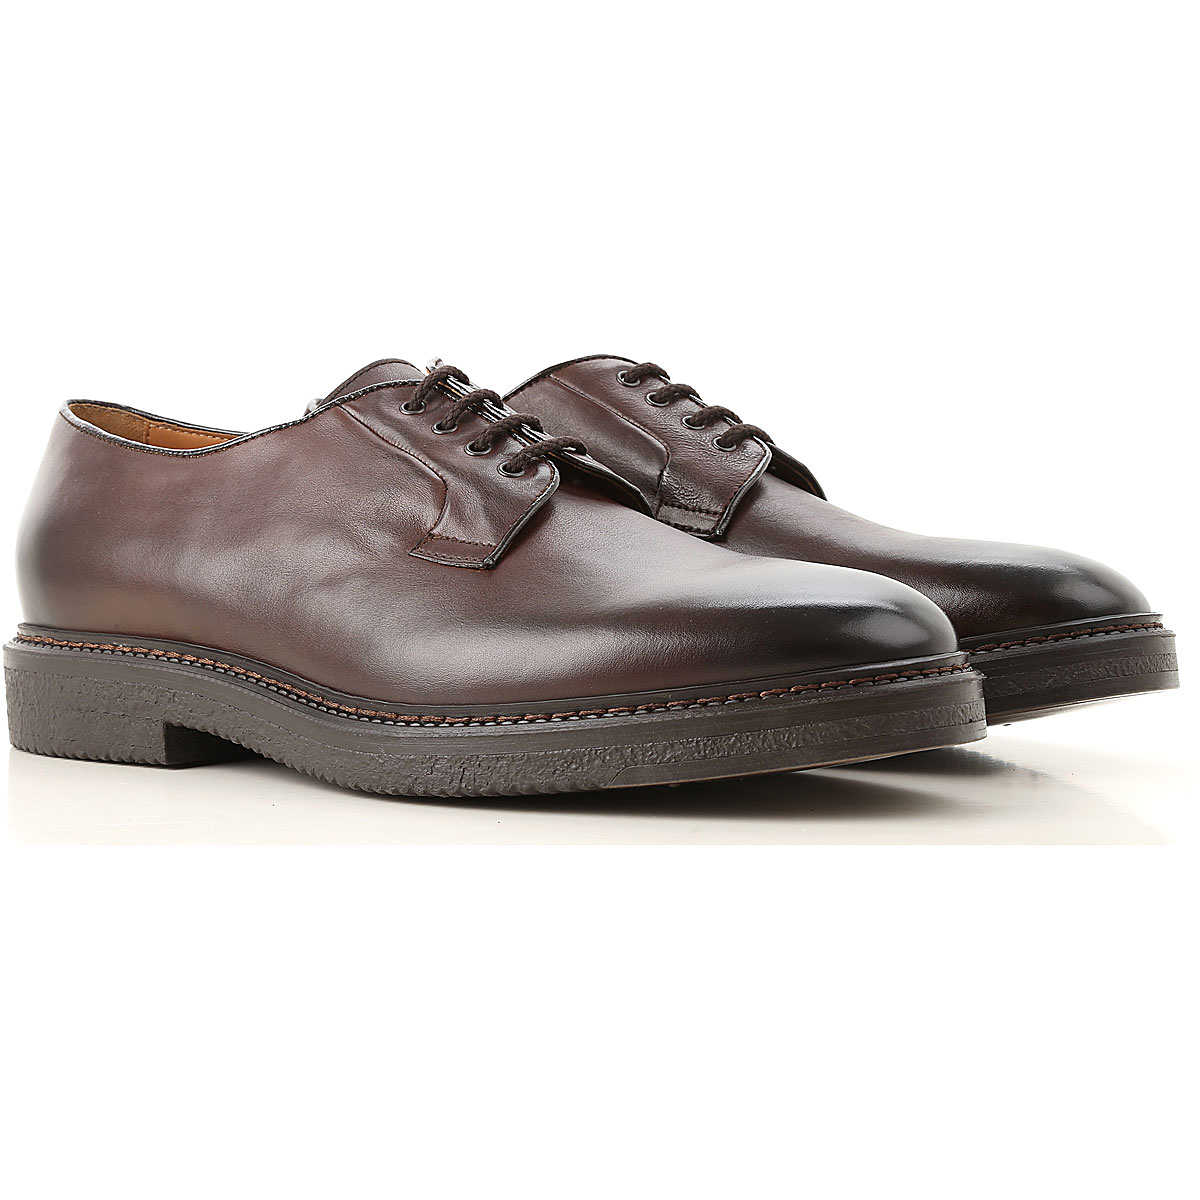 Doucals Lace Up Shoes for Men Oxfords 6.5 7 8 9 Derbies and Brogues On Sale UK - GOOFASH